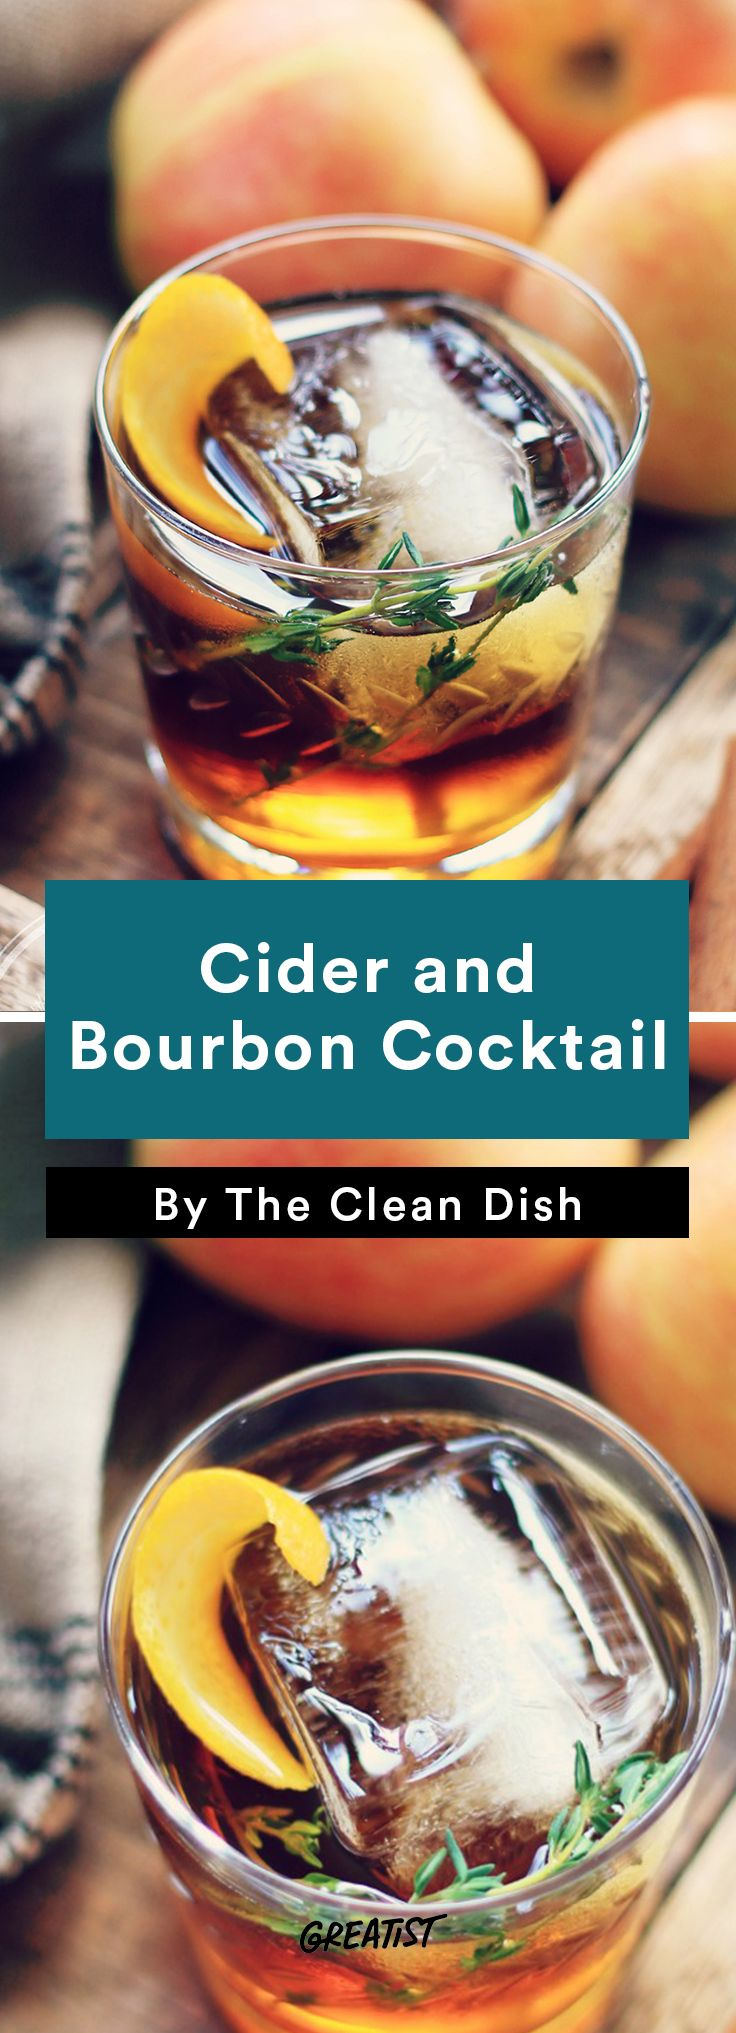 1. Cider and Bourbon Cocktail #apple #cocktails http://greatist.com/eat/apple-cocktail-recipes